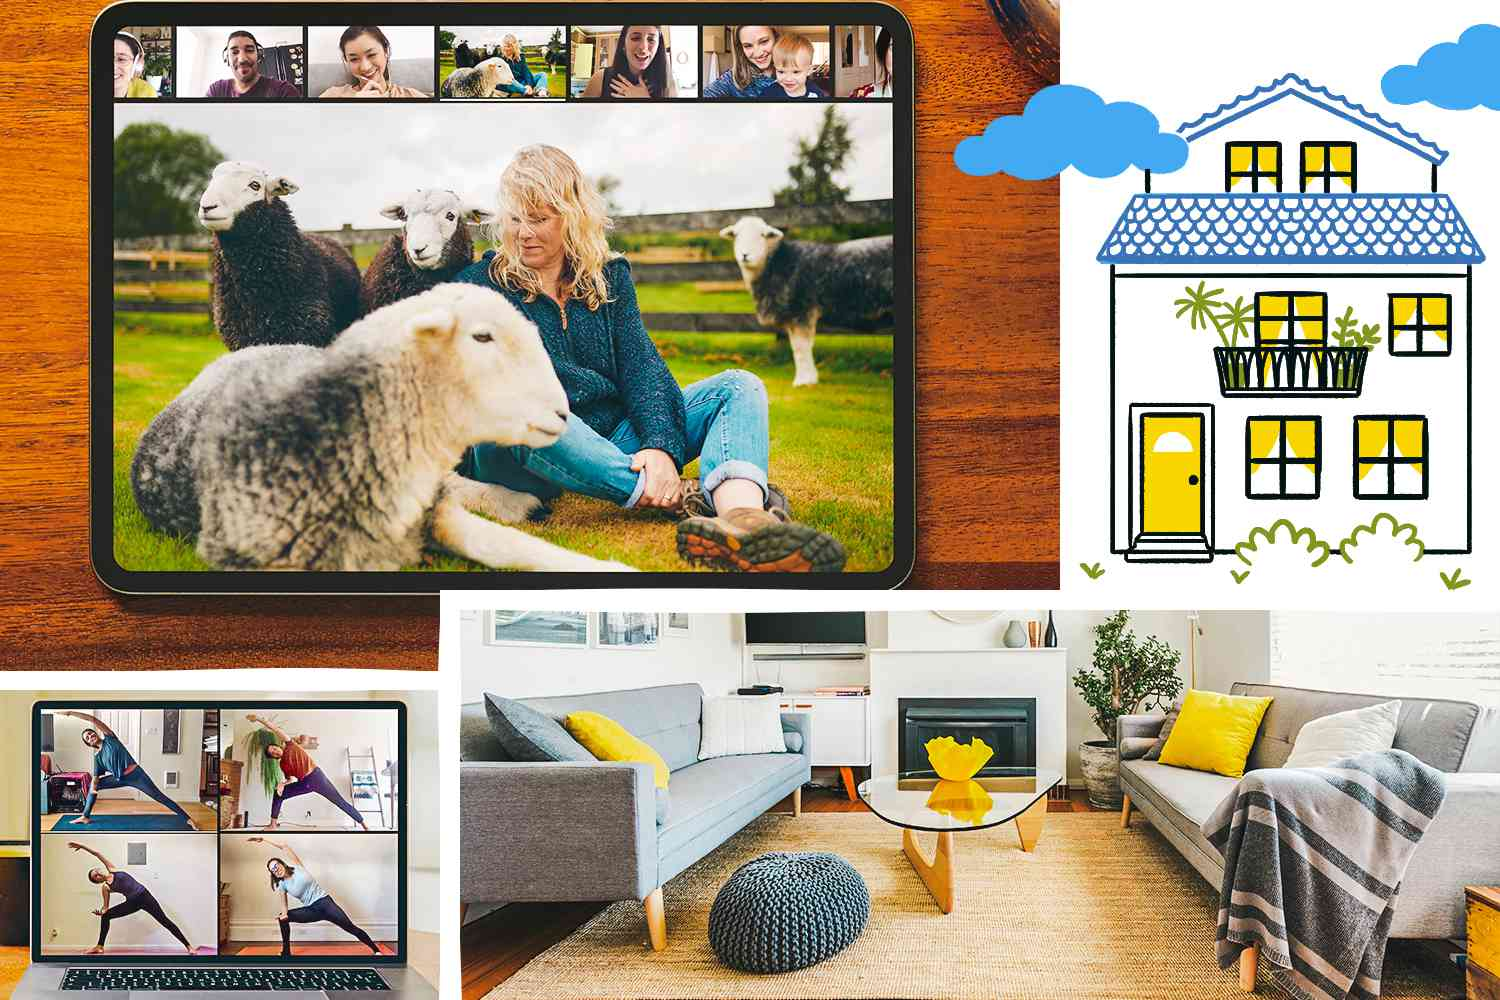 Collage of photos and and illustration depicting Airbnb and its digital experiences